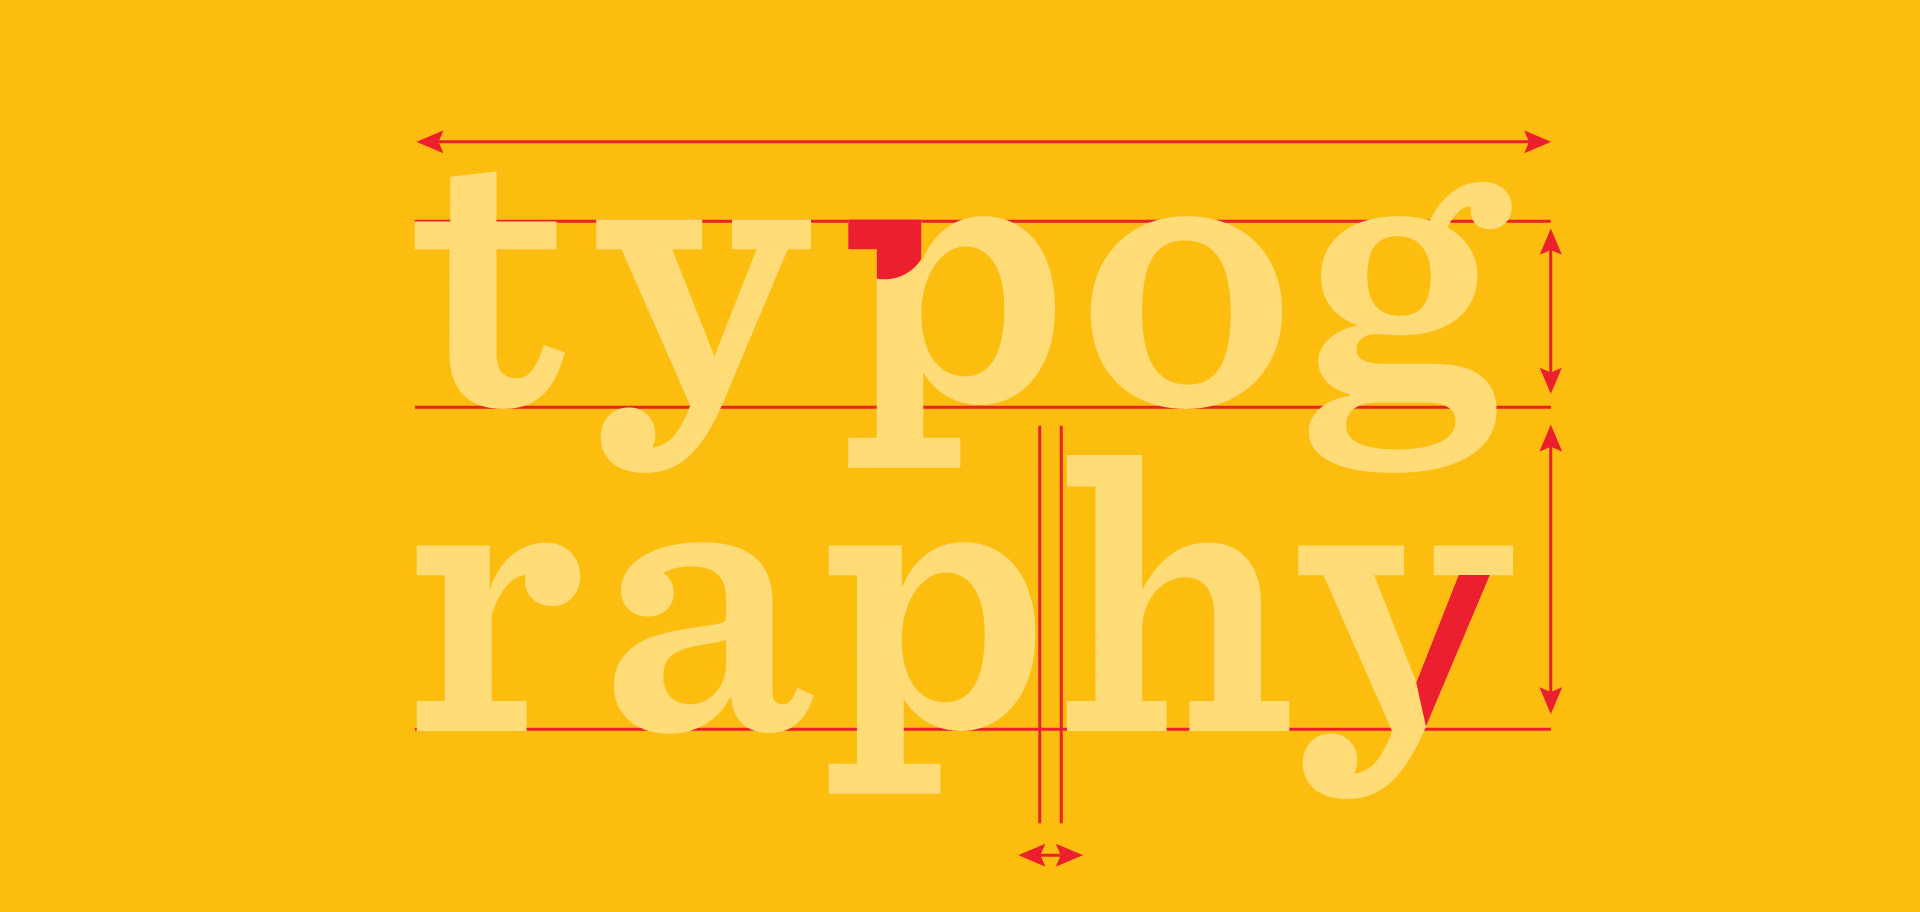 Typography Explained: A Quick Guide to Font Terminology